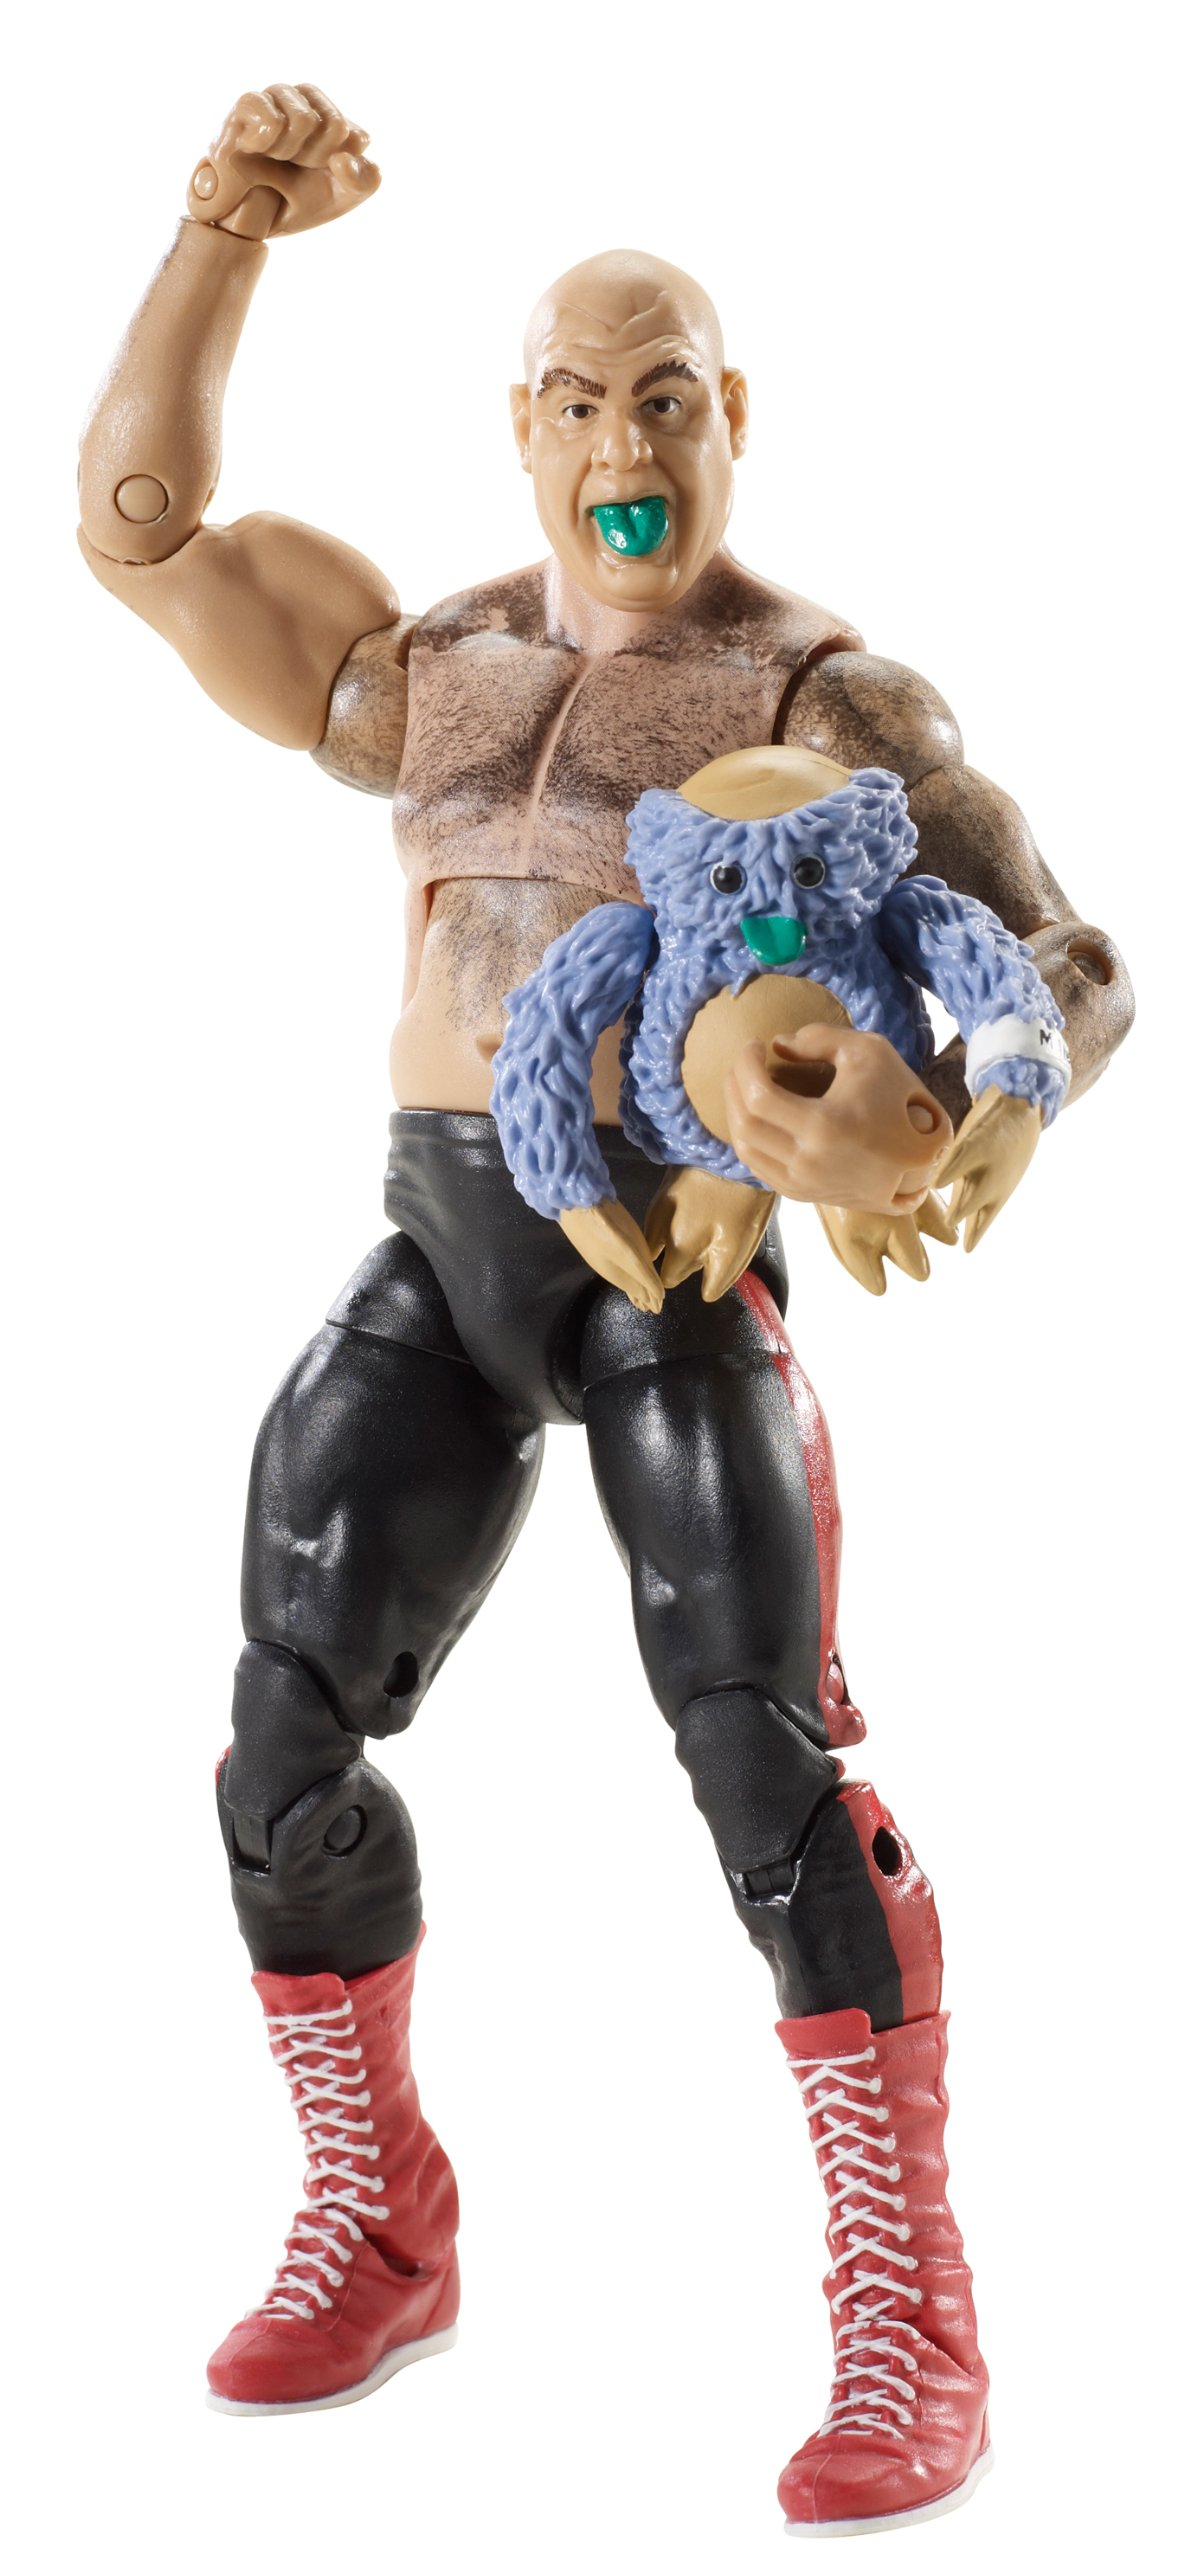 WWE Legends George ''The Animal'' Steele Collector Figure Series #4 by Mattel